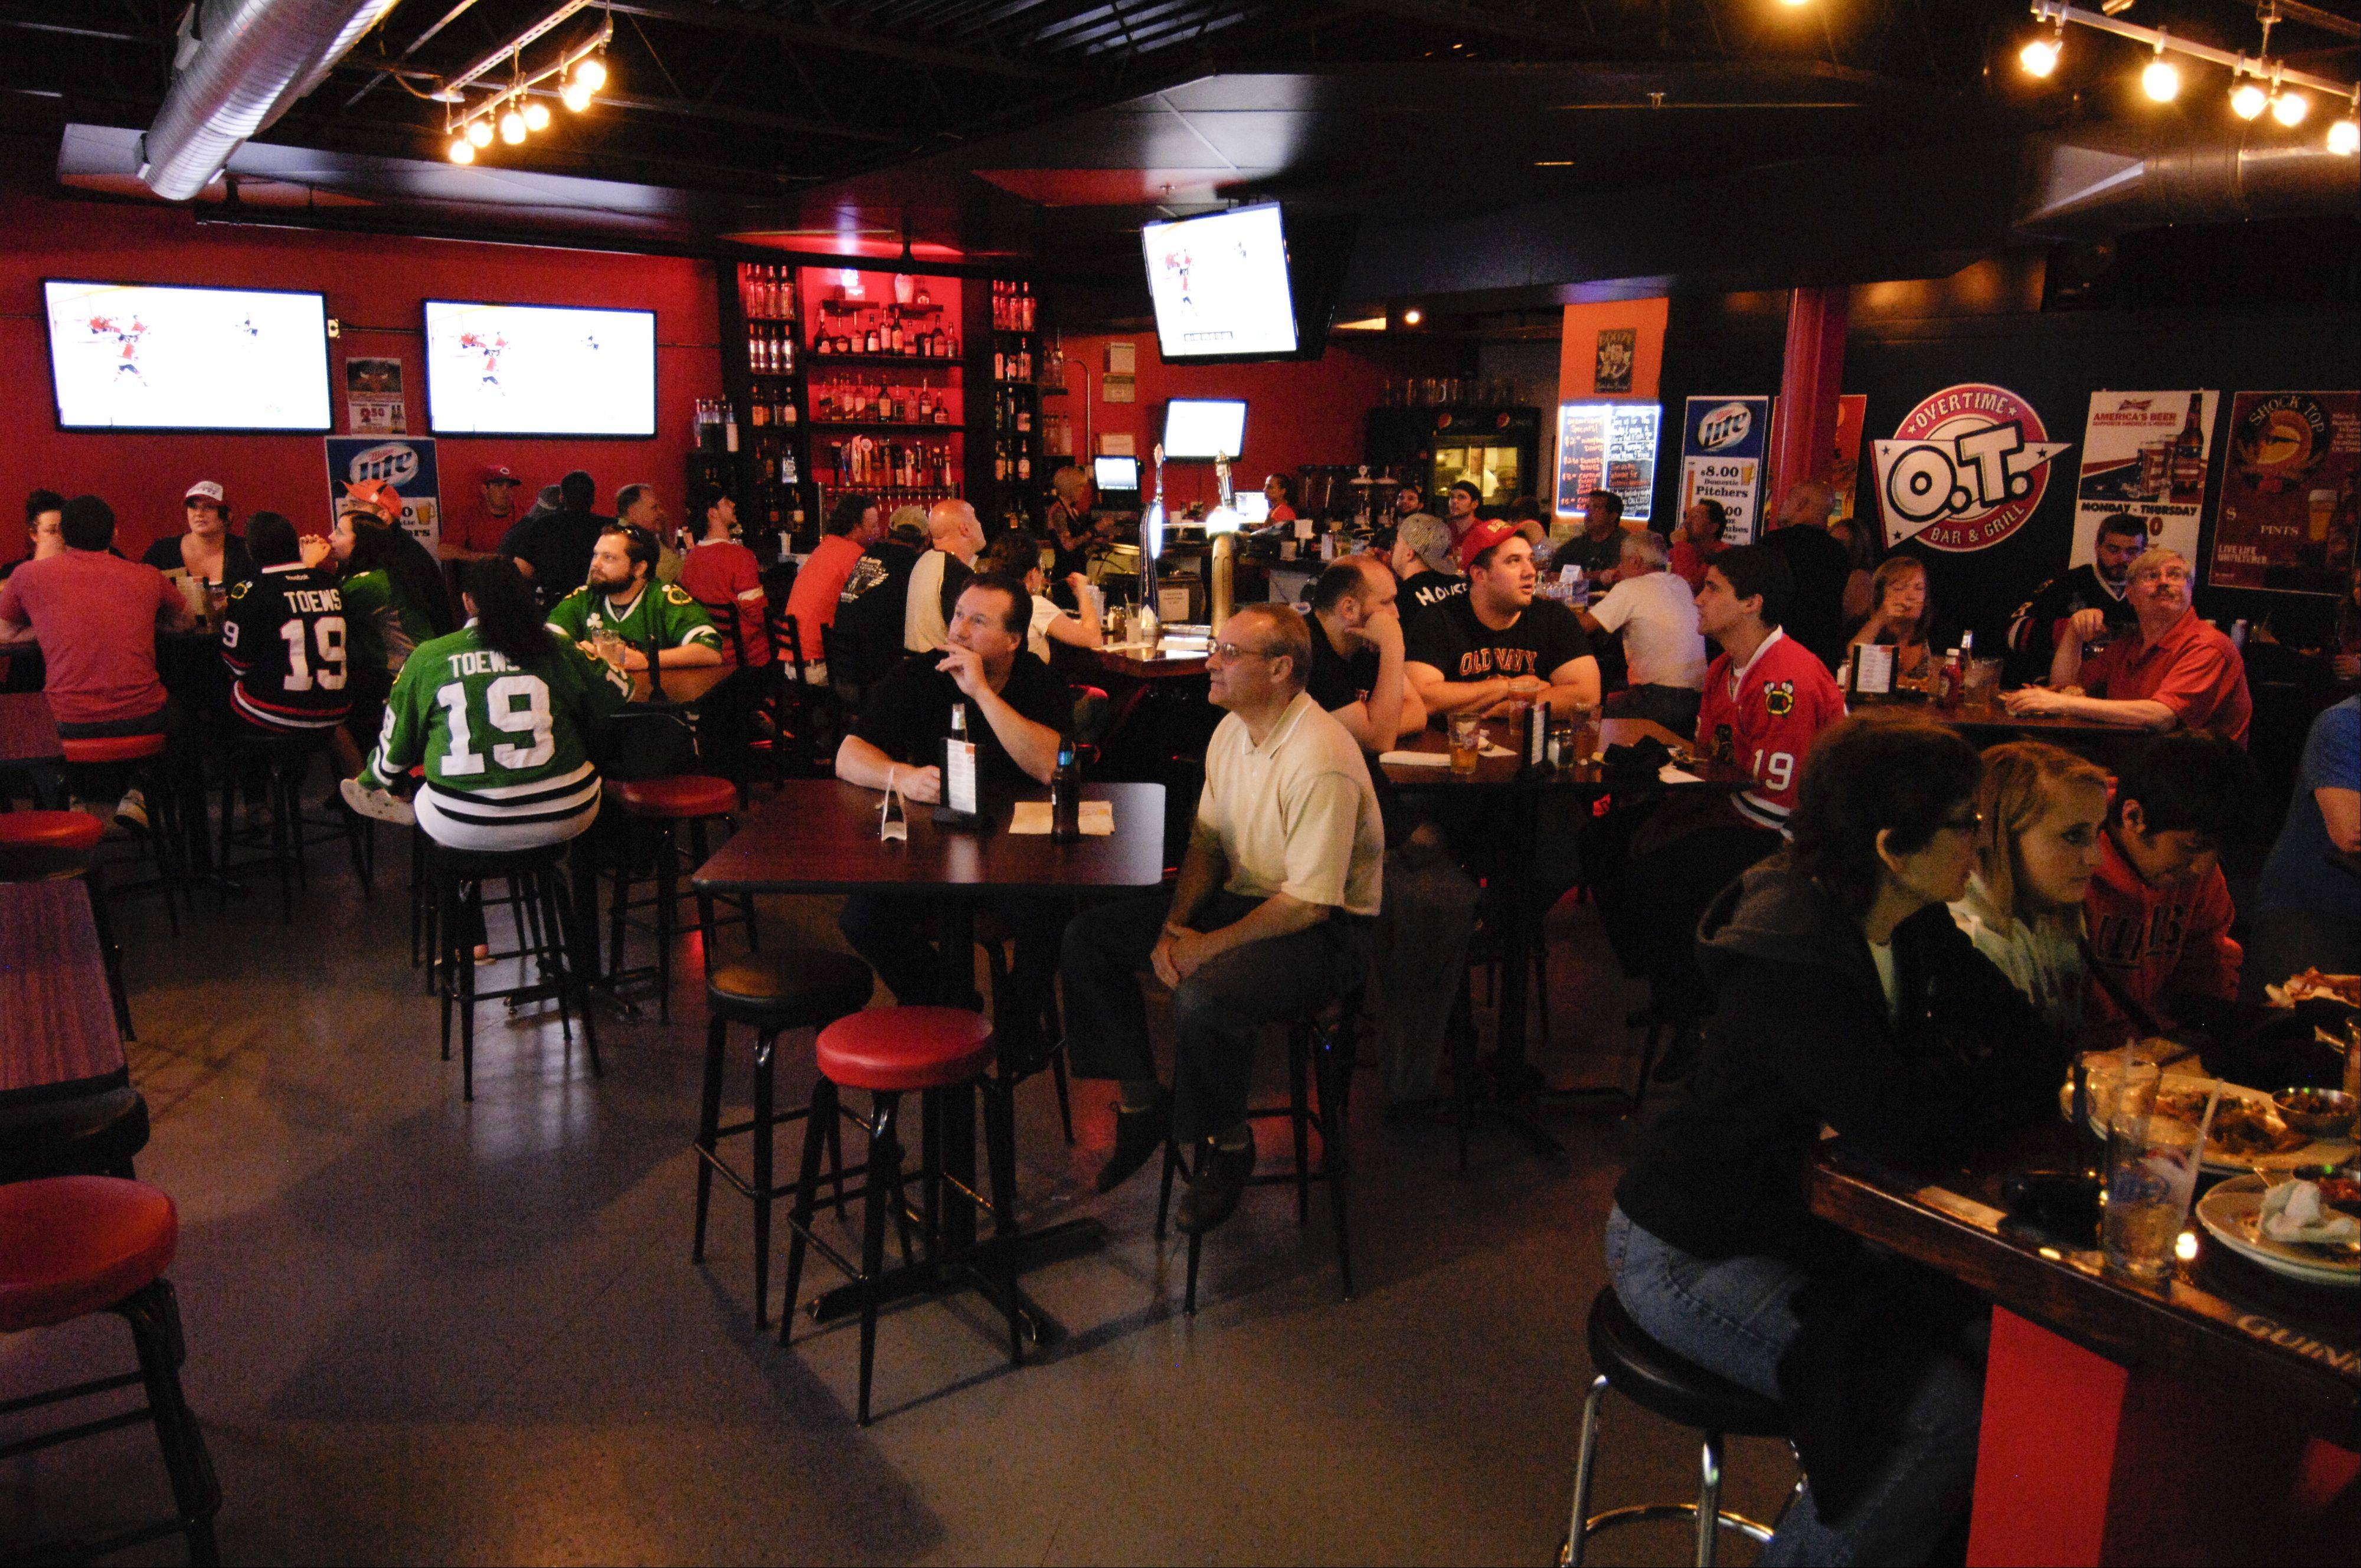 Patrons watch the Chicago Blackhawks at Overtime Bar & Grill in Lombard.